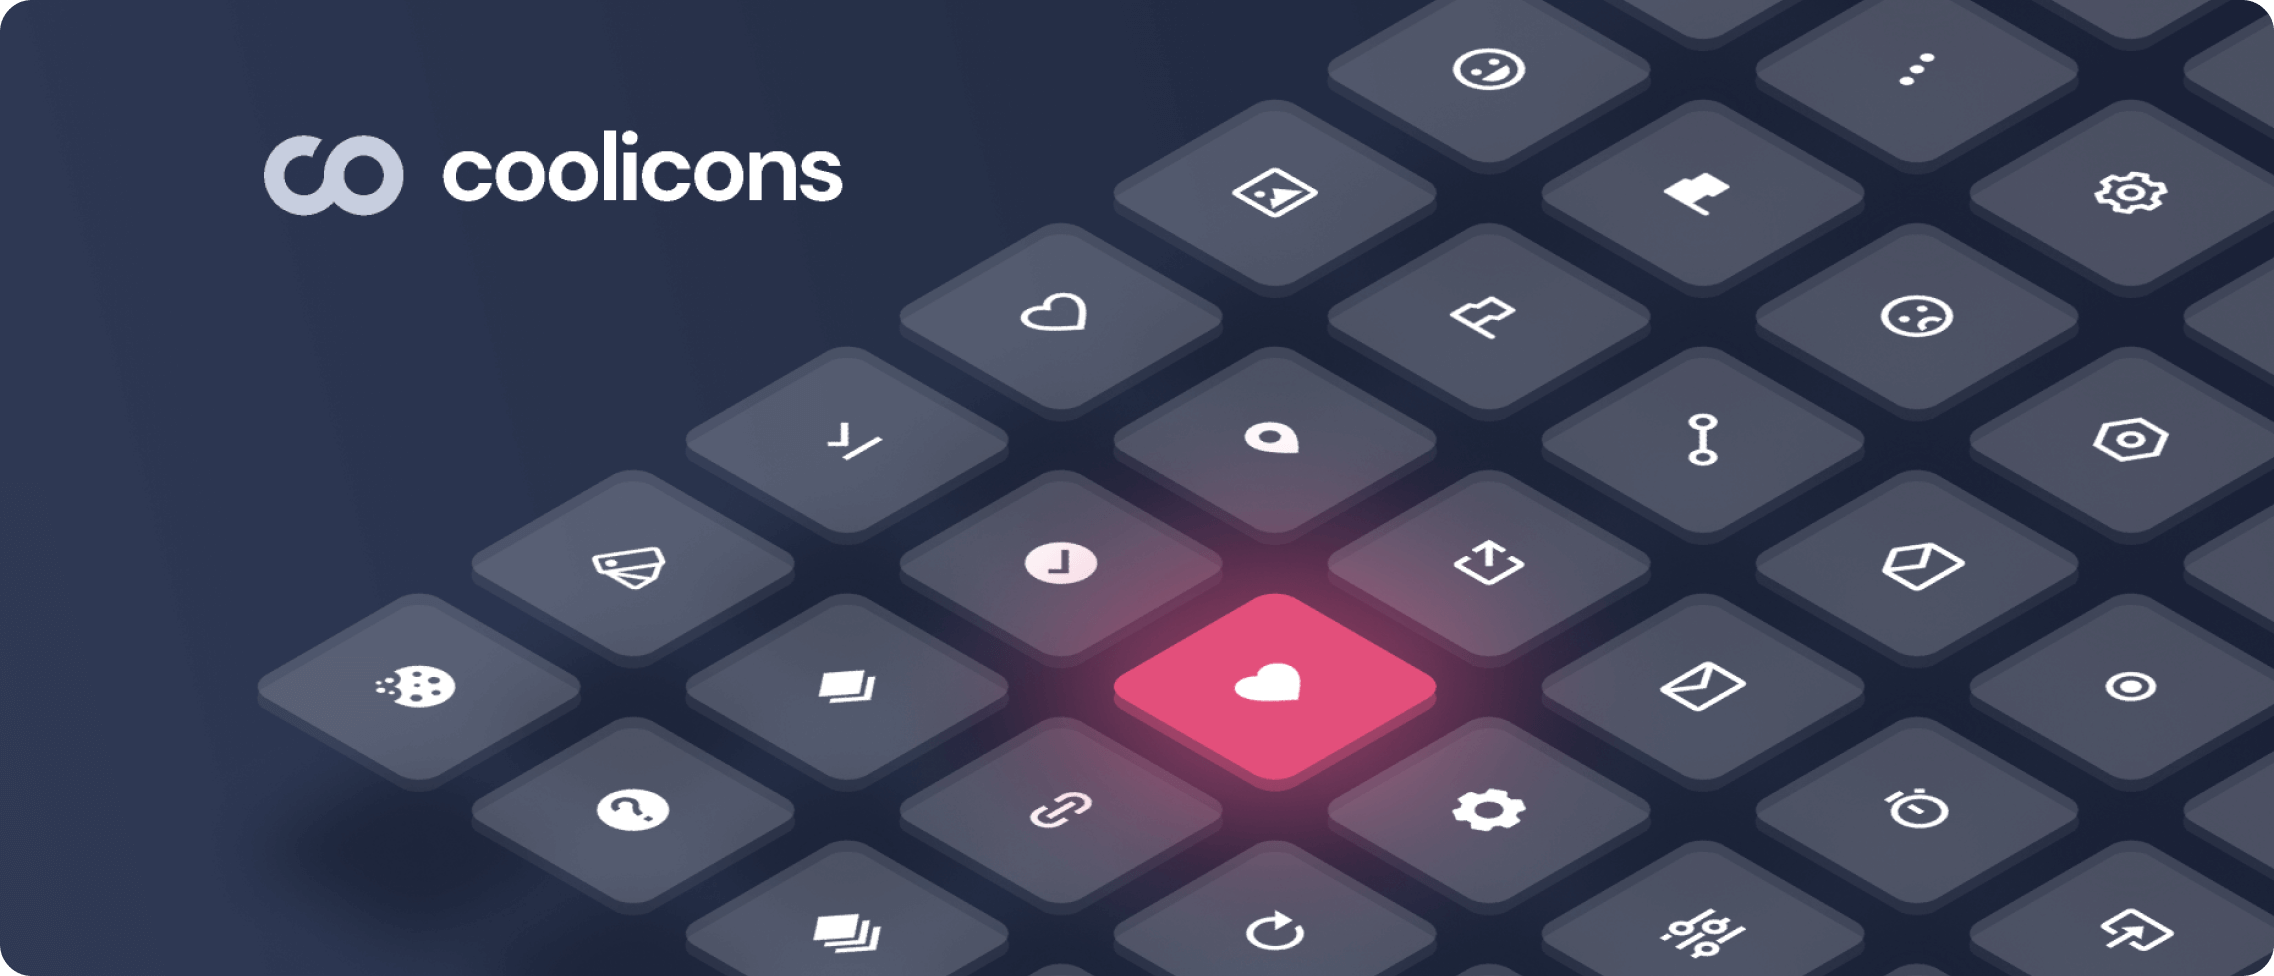 Coolicons icon pack examples.